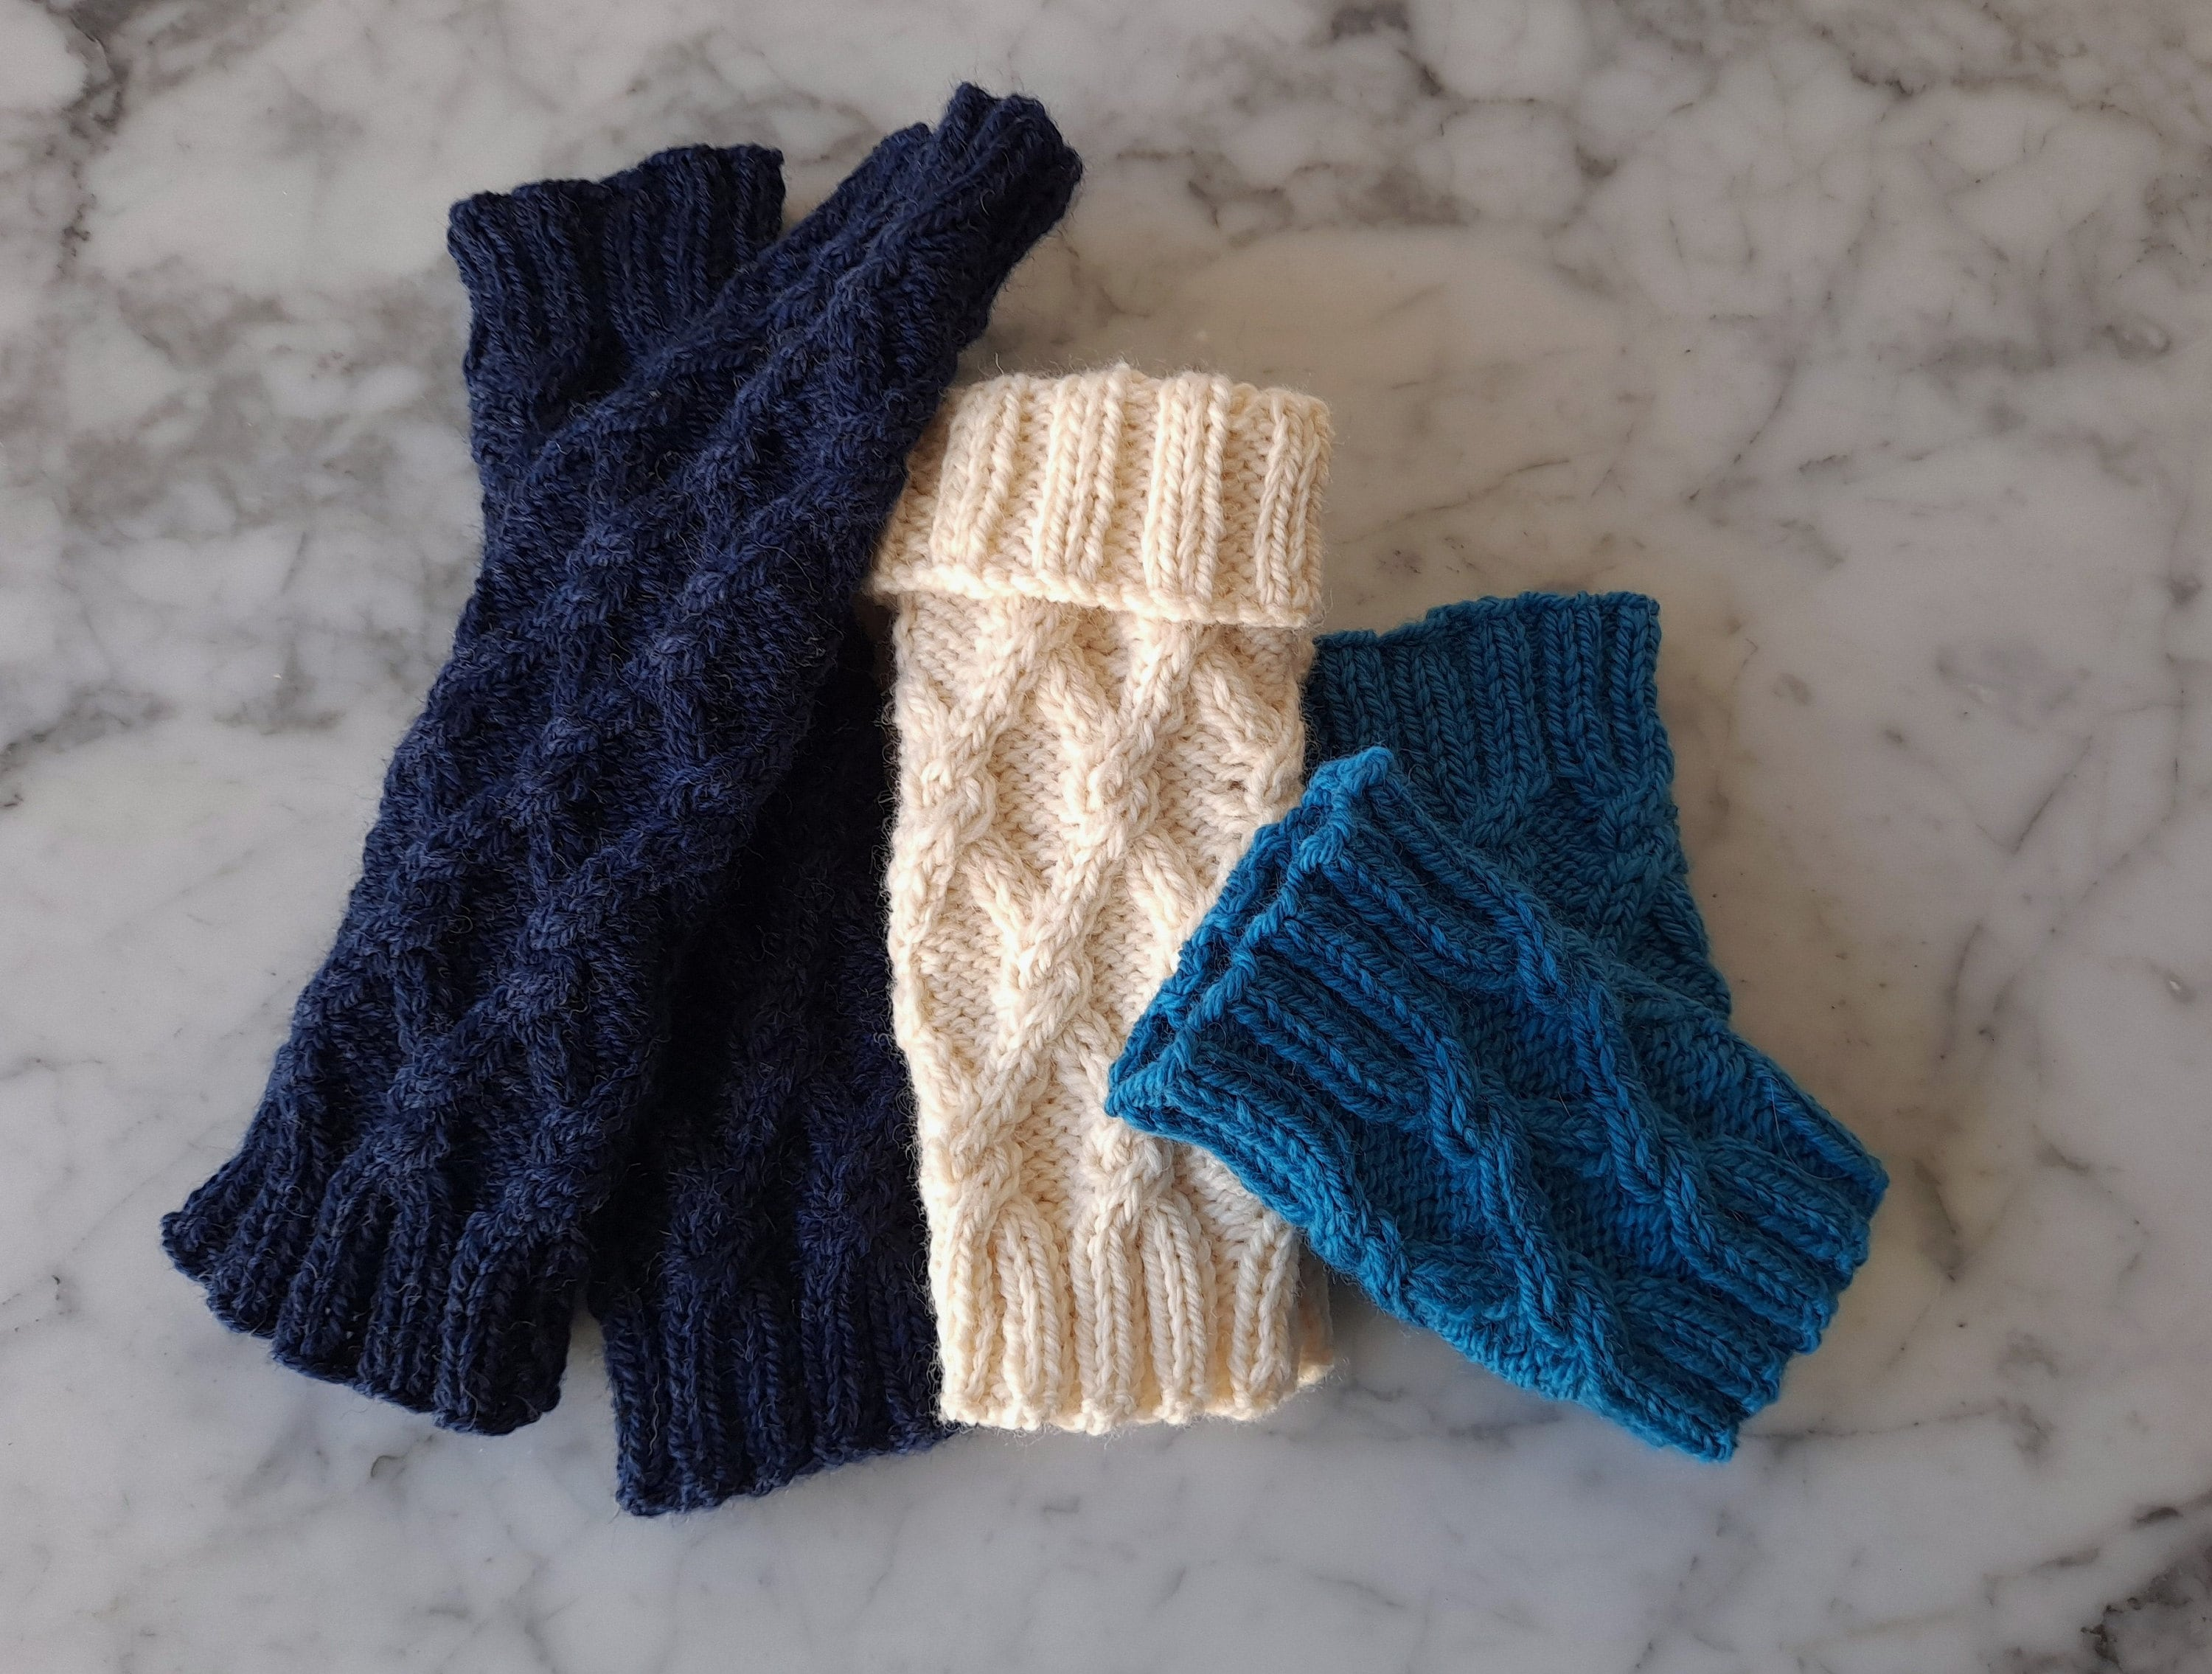 Three pairs of knittted wristwamers are displayed laid flat; the mittens are in different sizes and lengths.